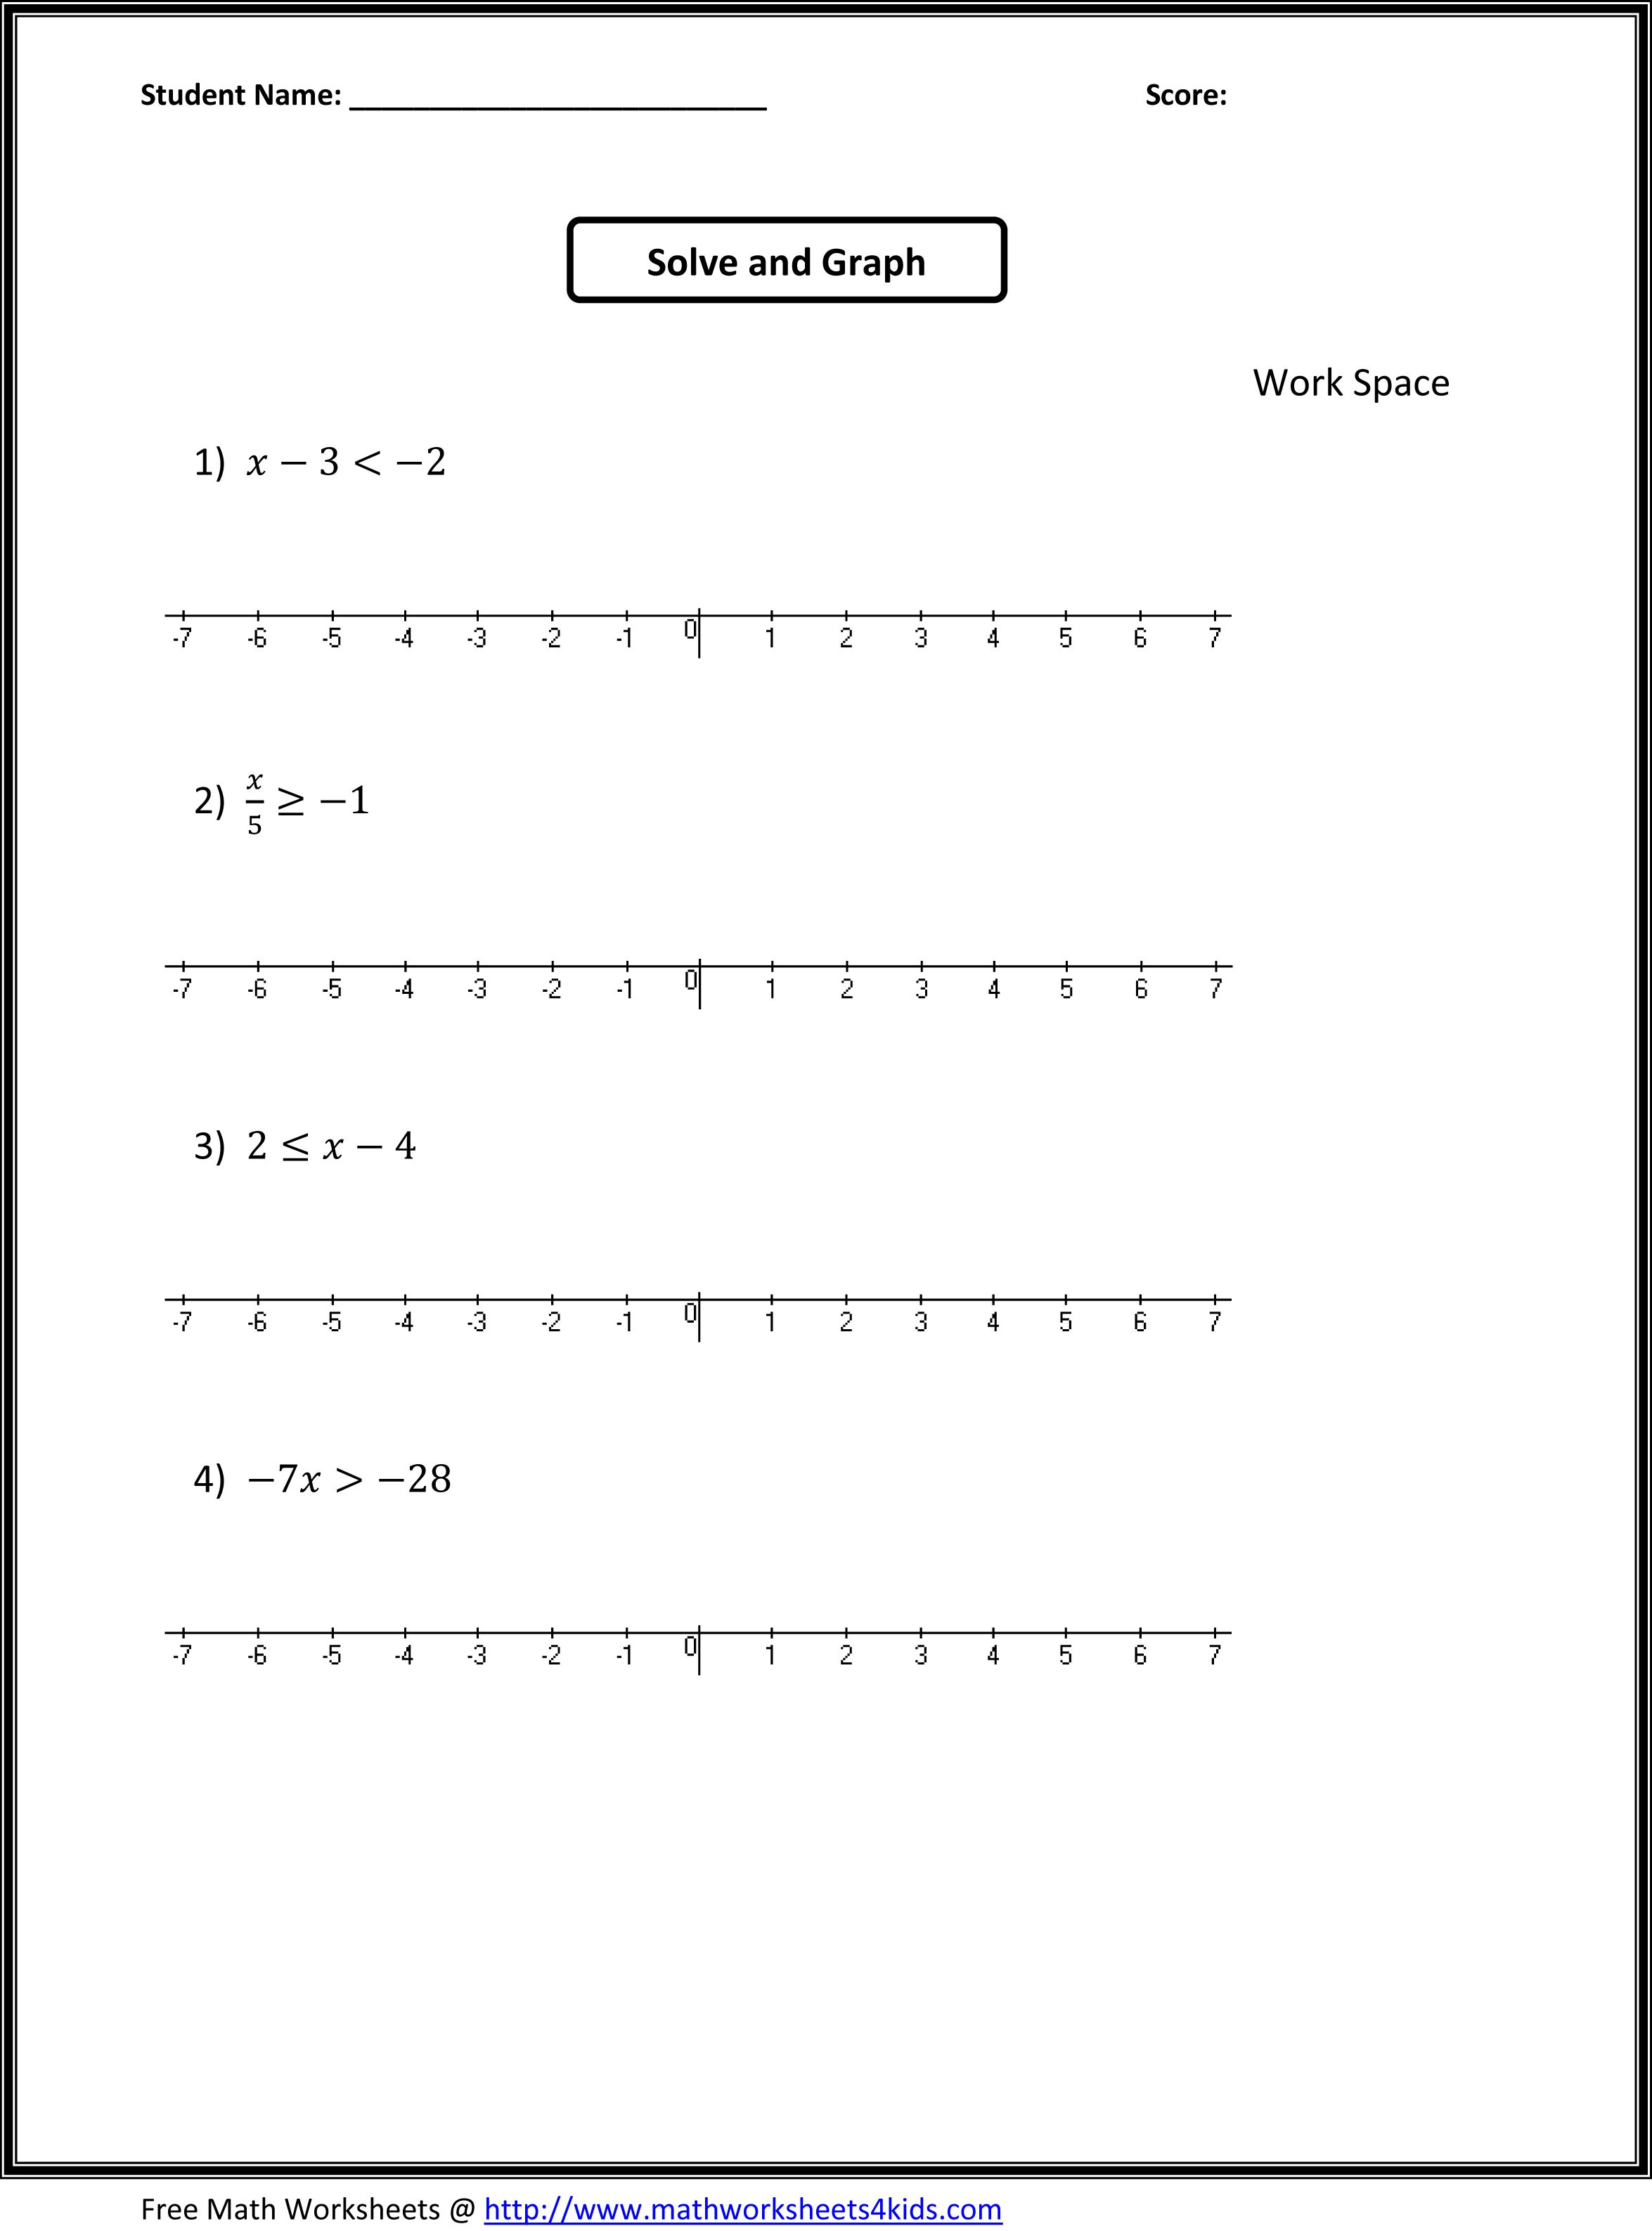 math worksheet : 1000 images about math on pinterest  7th grade math worksheets  : 6th Grade Math Practice Worksheets